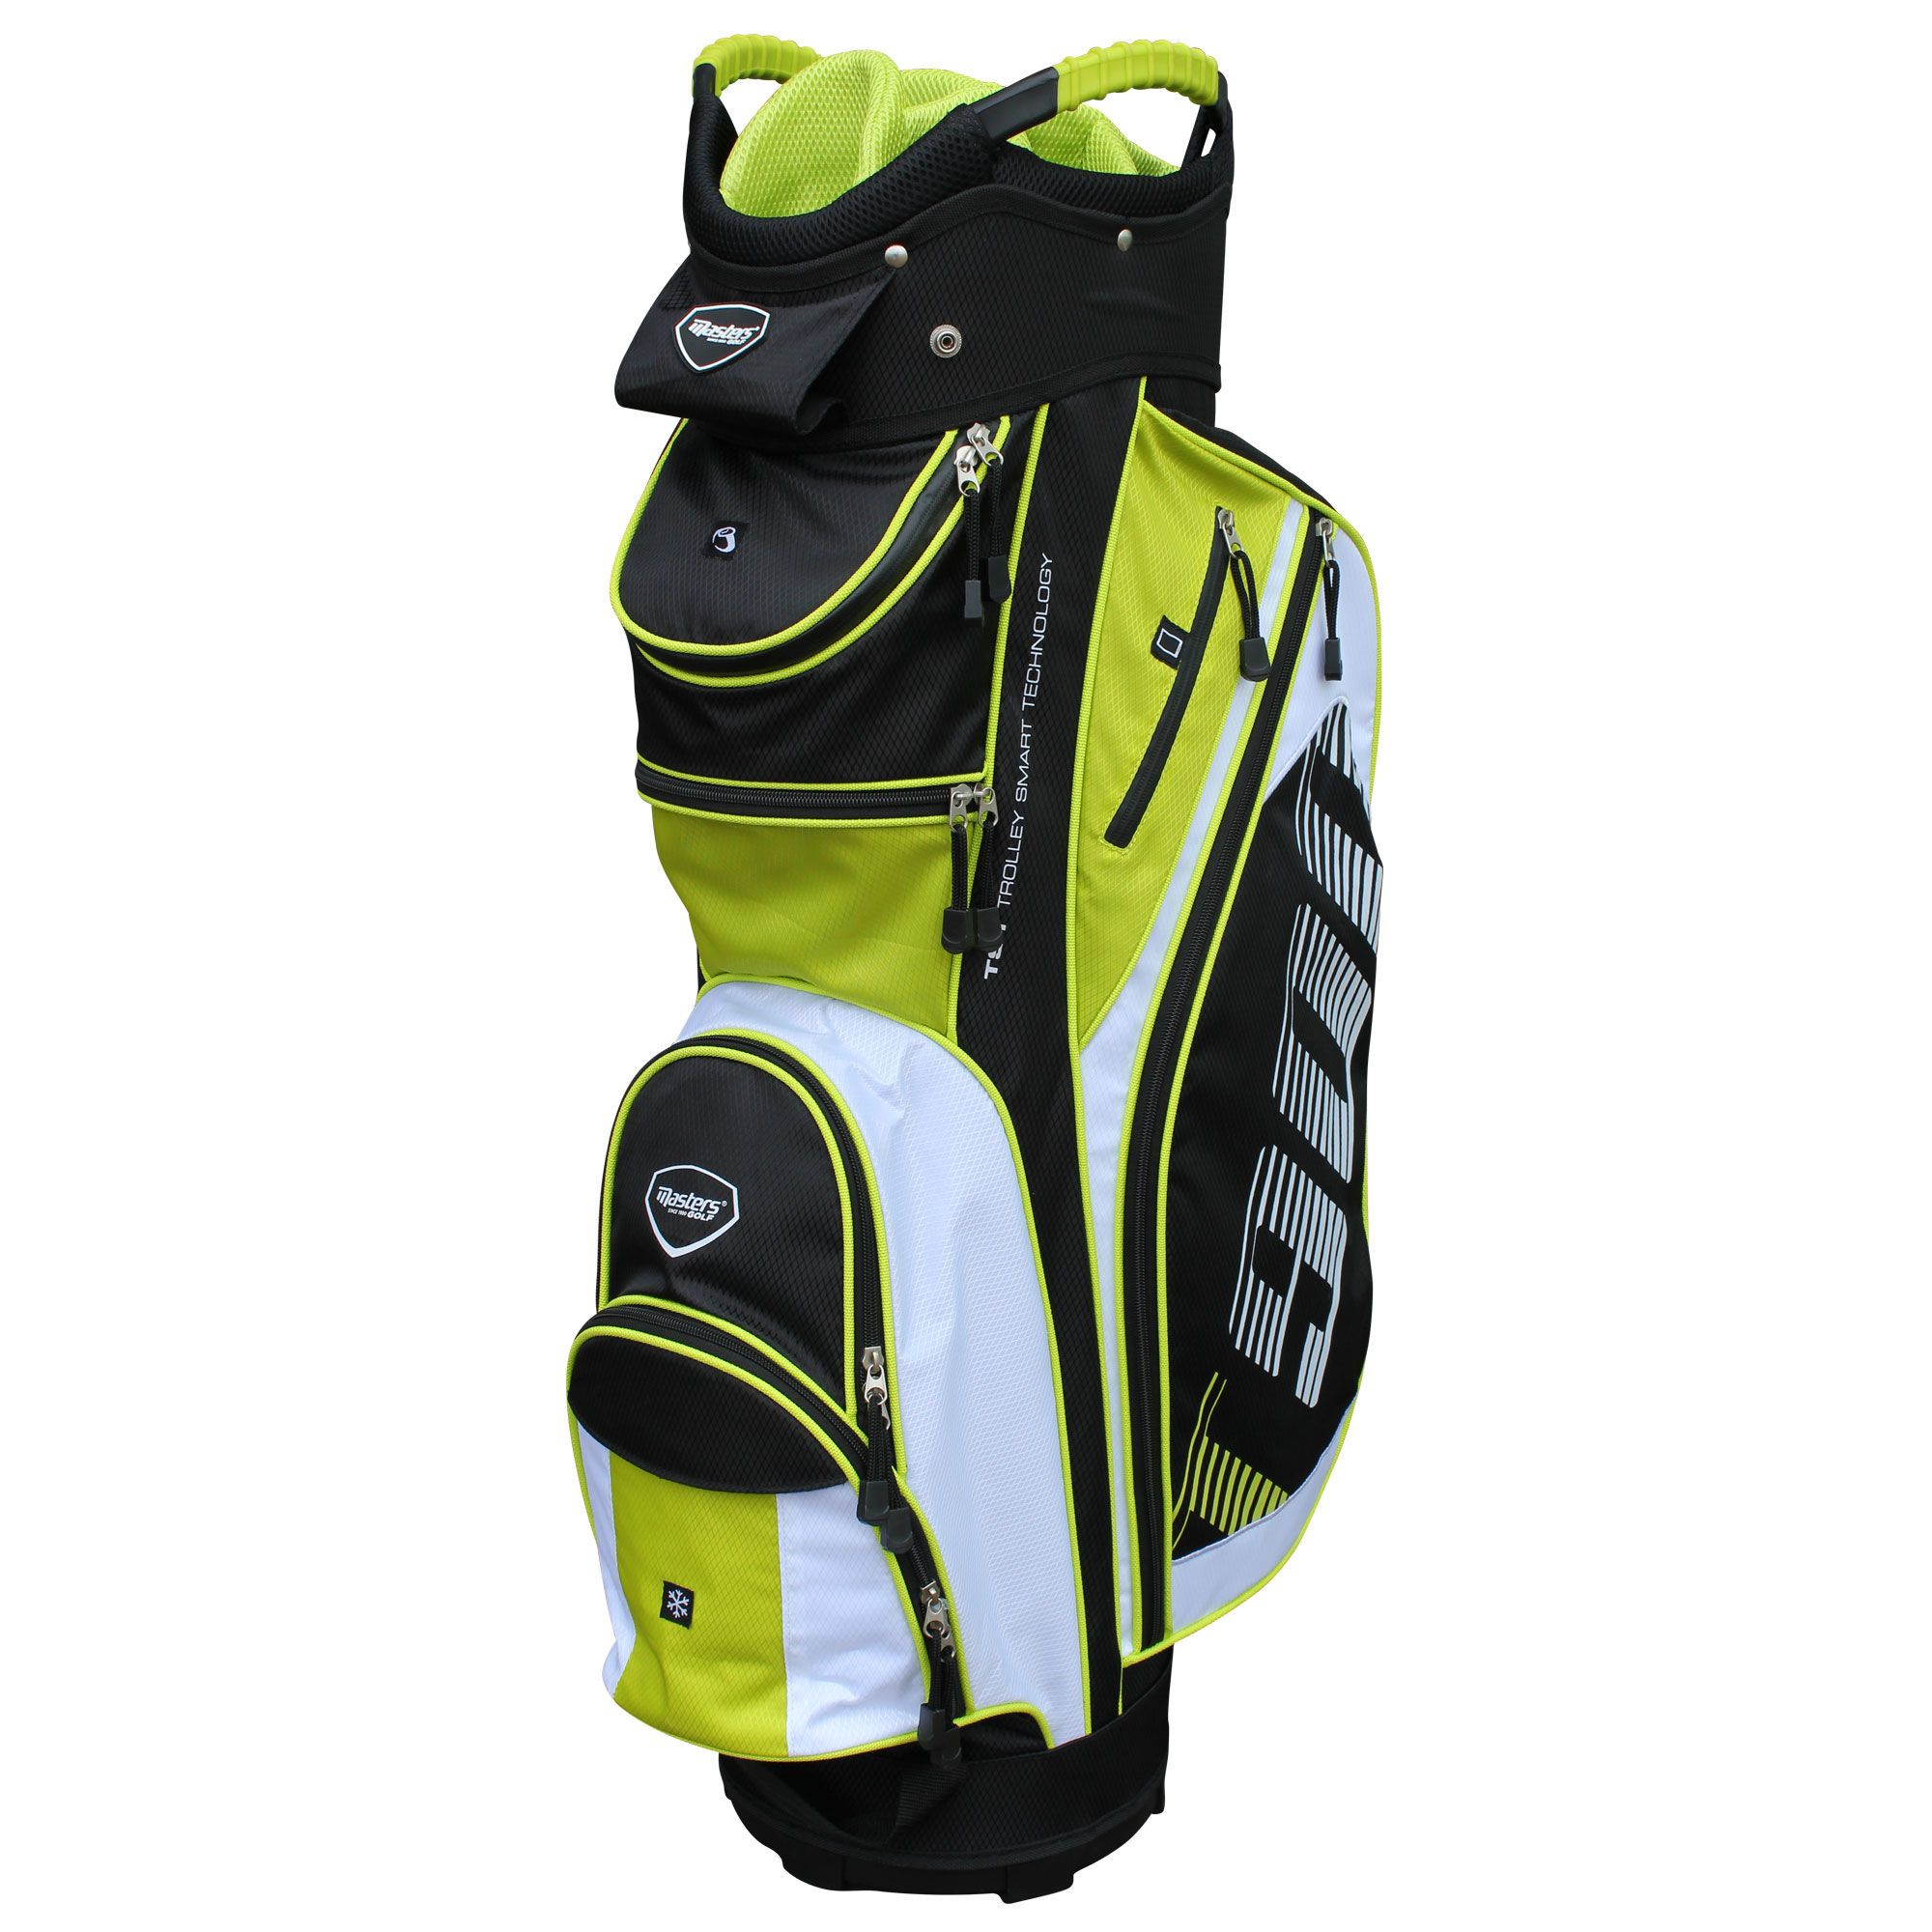 Masters T900 Golf Cart Bag